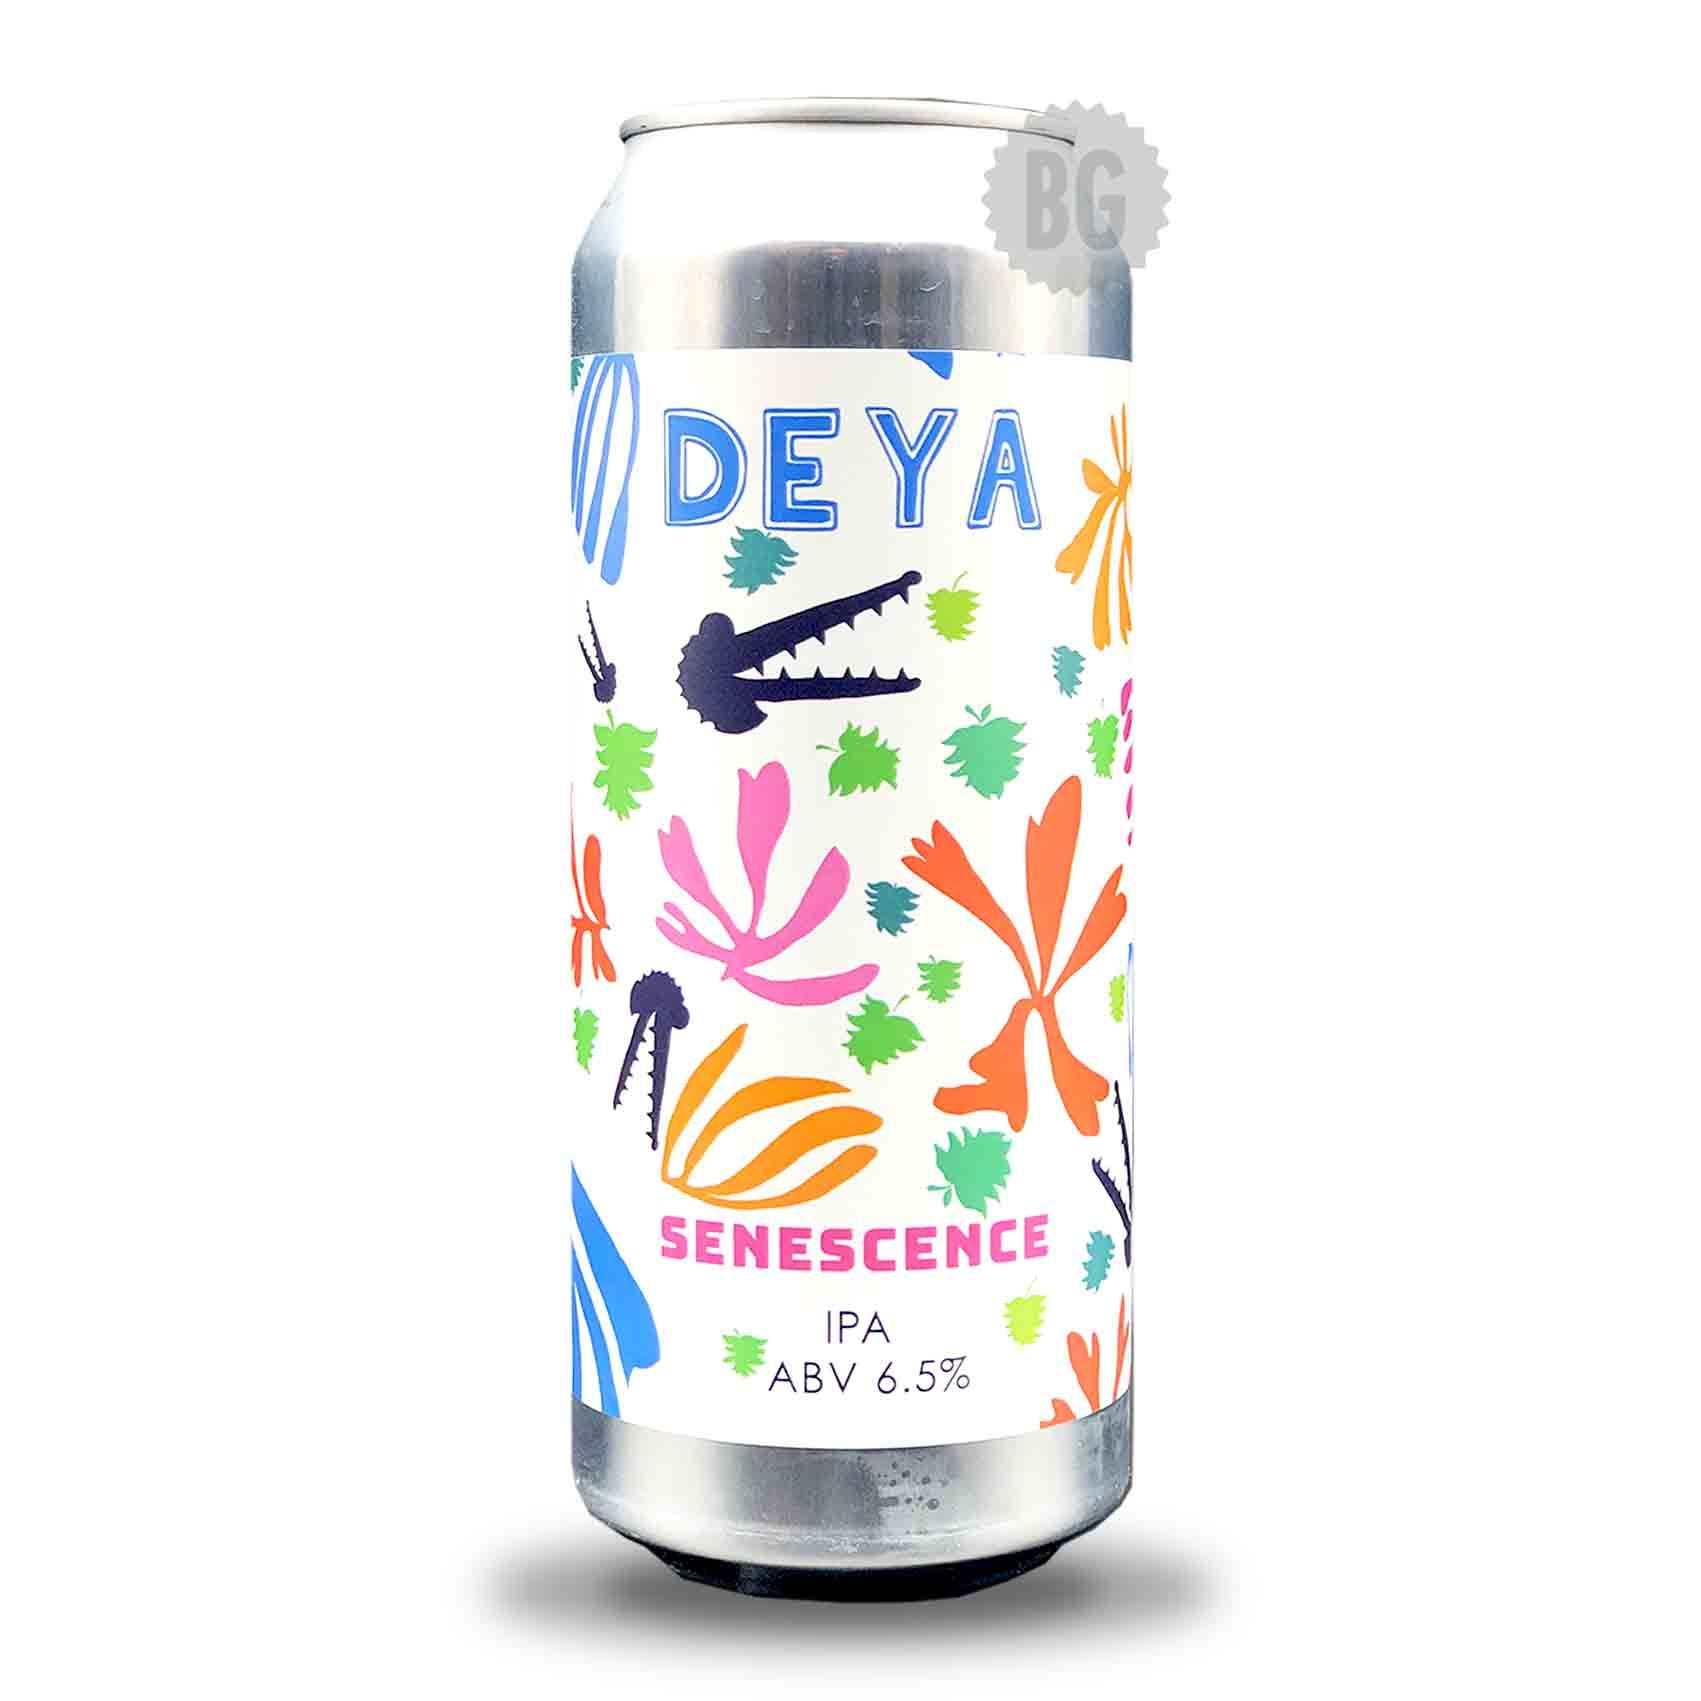 Deya Brewing Co - Senescence - India Pale Ale - 500ml Can